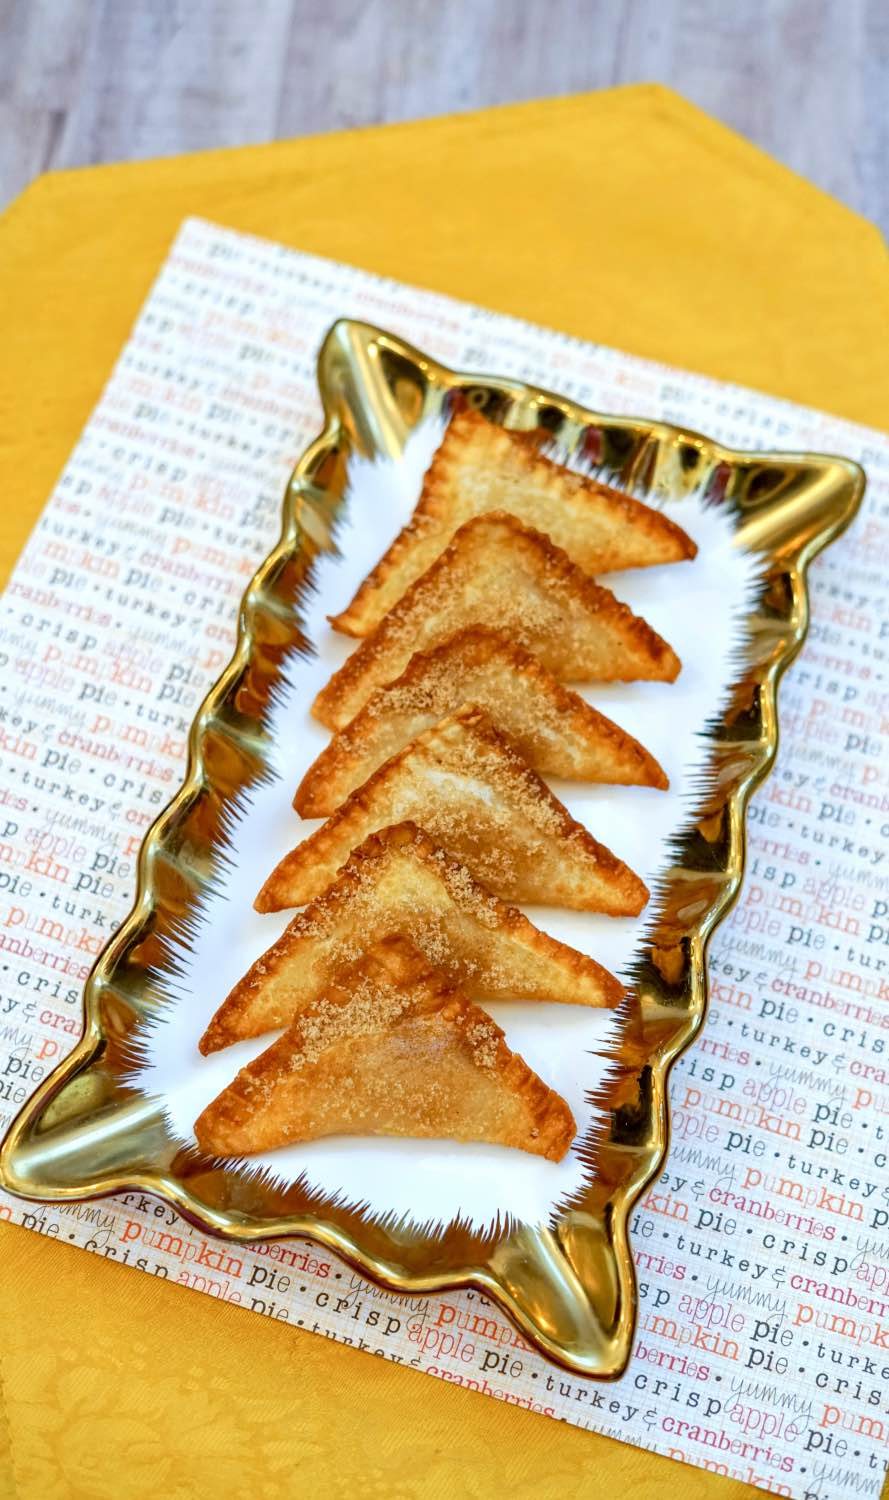 fried apple pie wonton recipe pop shop america